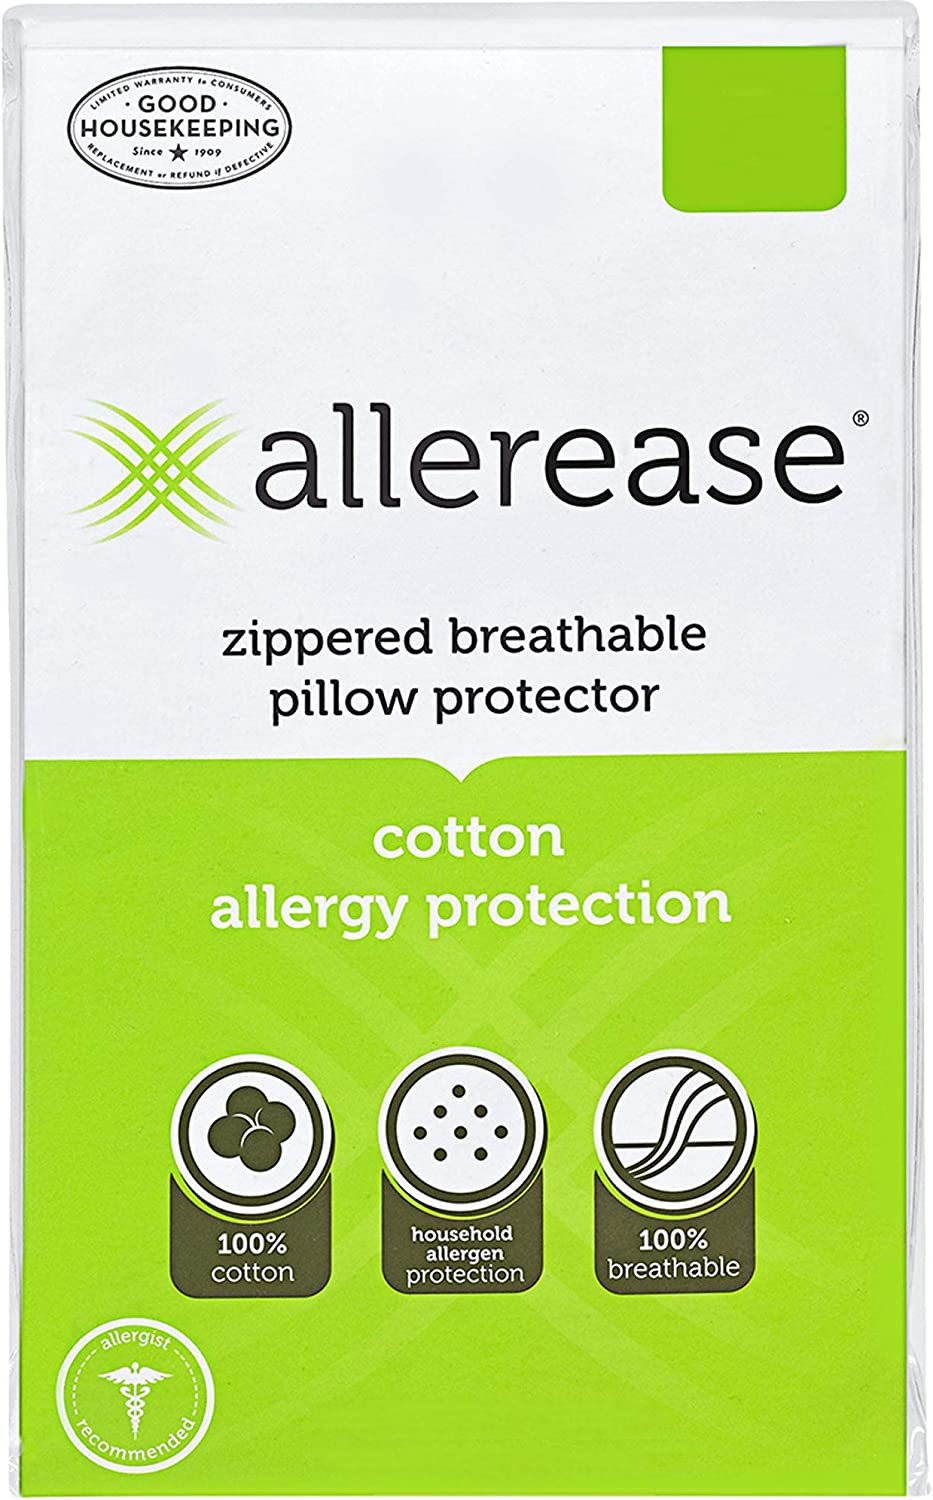 B0017060YM AllerEase 100% Cotton Allergy Protection Pillow Protectors – Hypoallergenic, Zippered, Allergist Recommended, Prevent Collection of Dust Mites and Other Allergens, Queen Sized, 20 x 30 (Set of 2) 71AnimATMrL